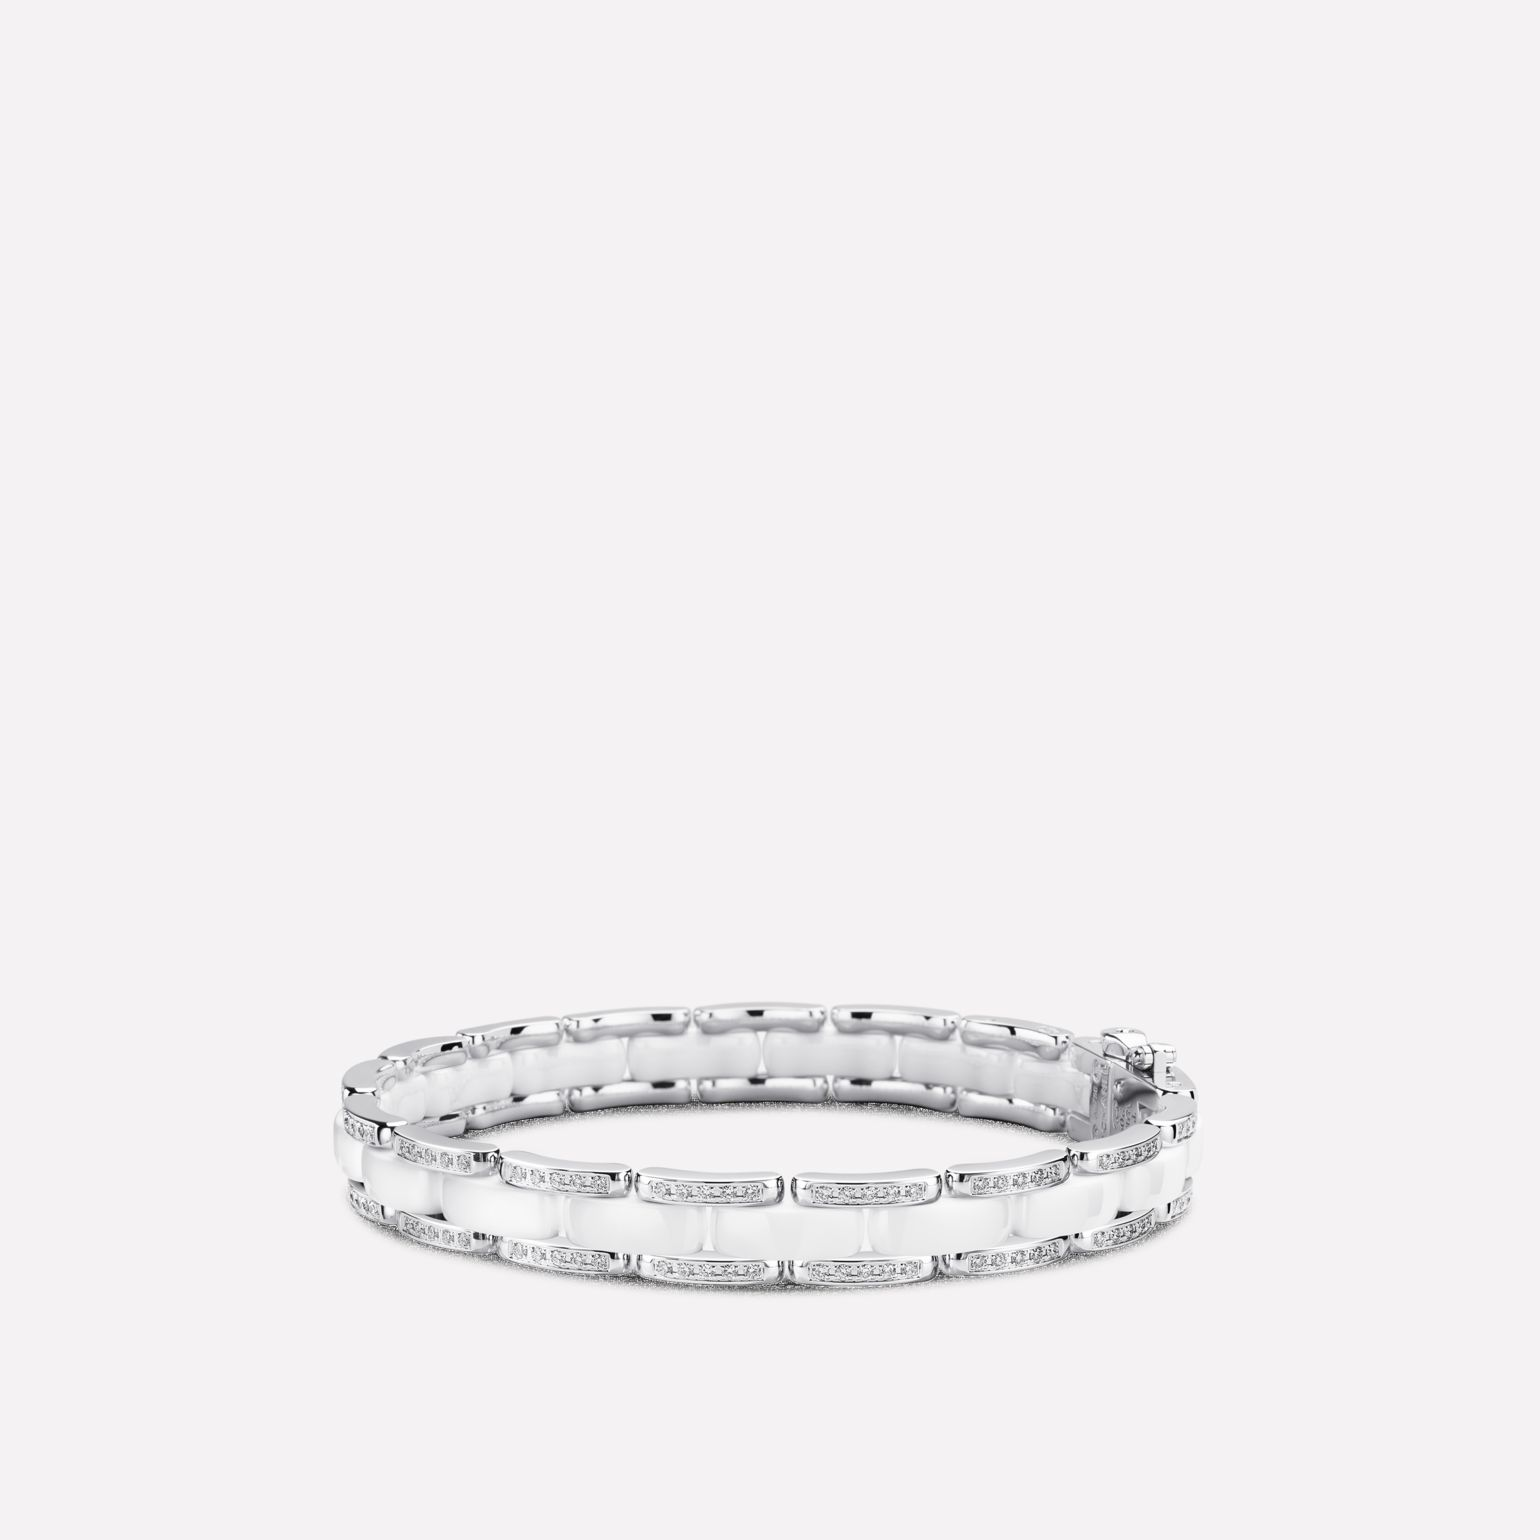 Bracelet Ultra Or blanc 18 carats, diamants, céramique blanche